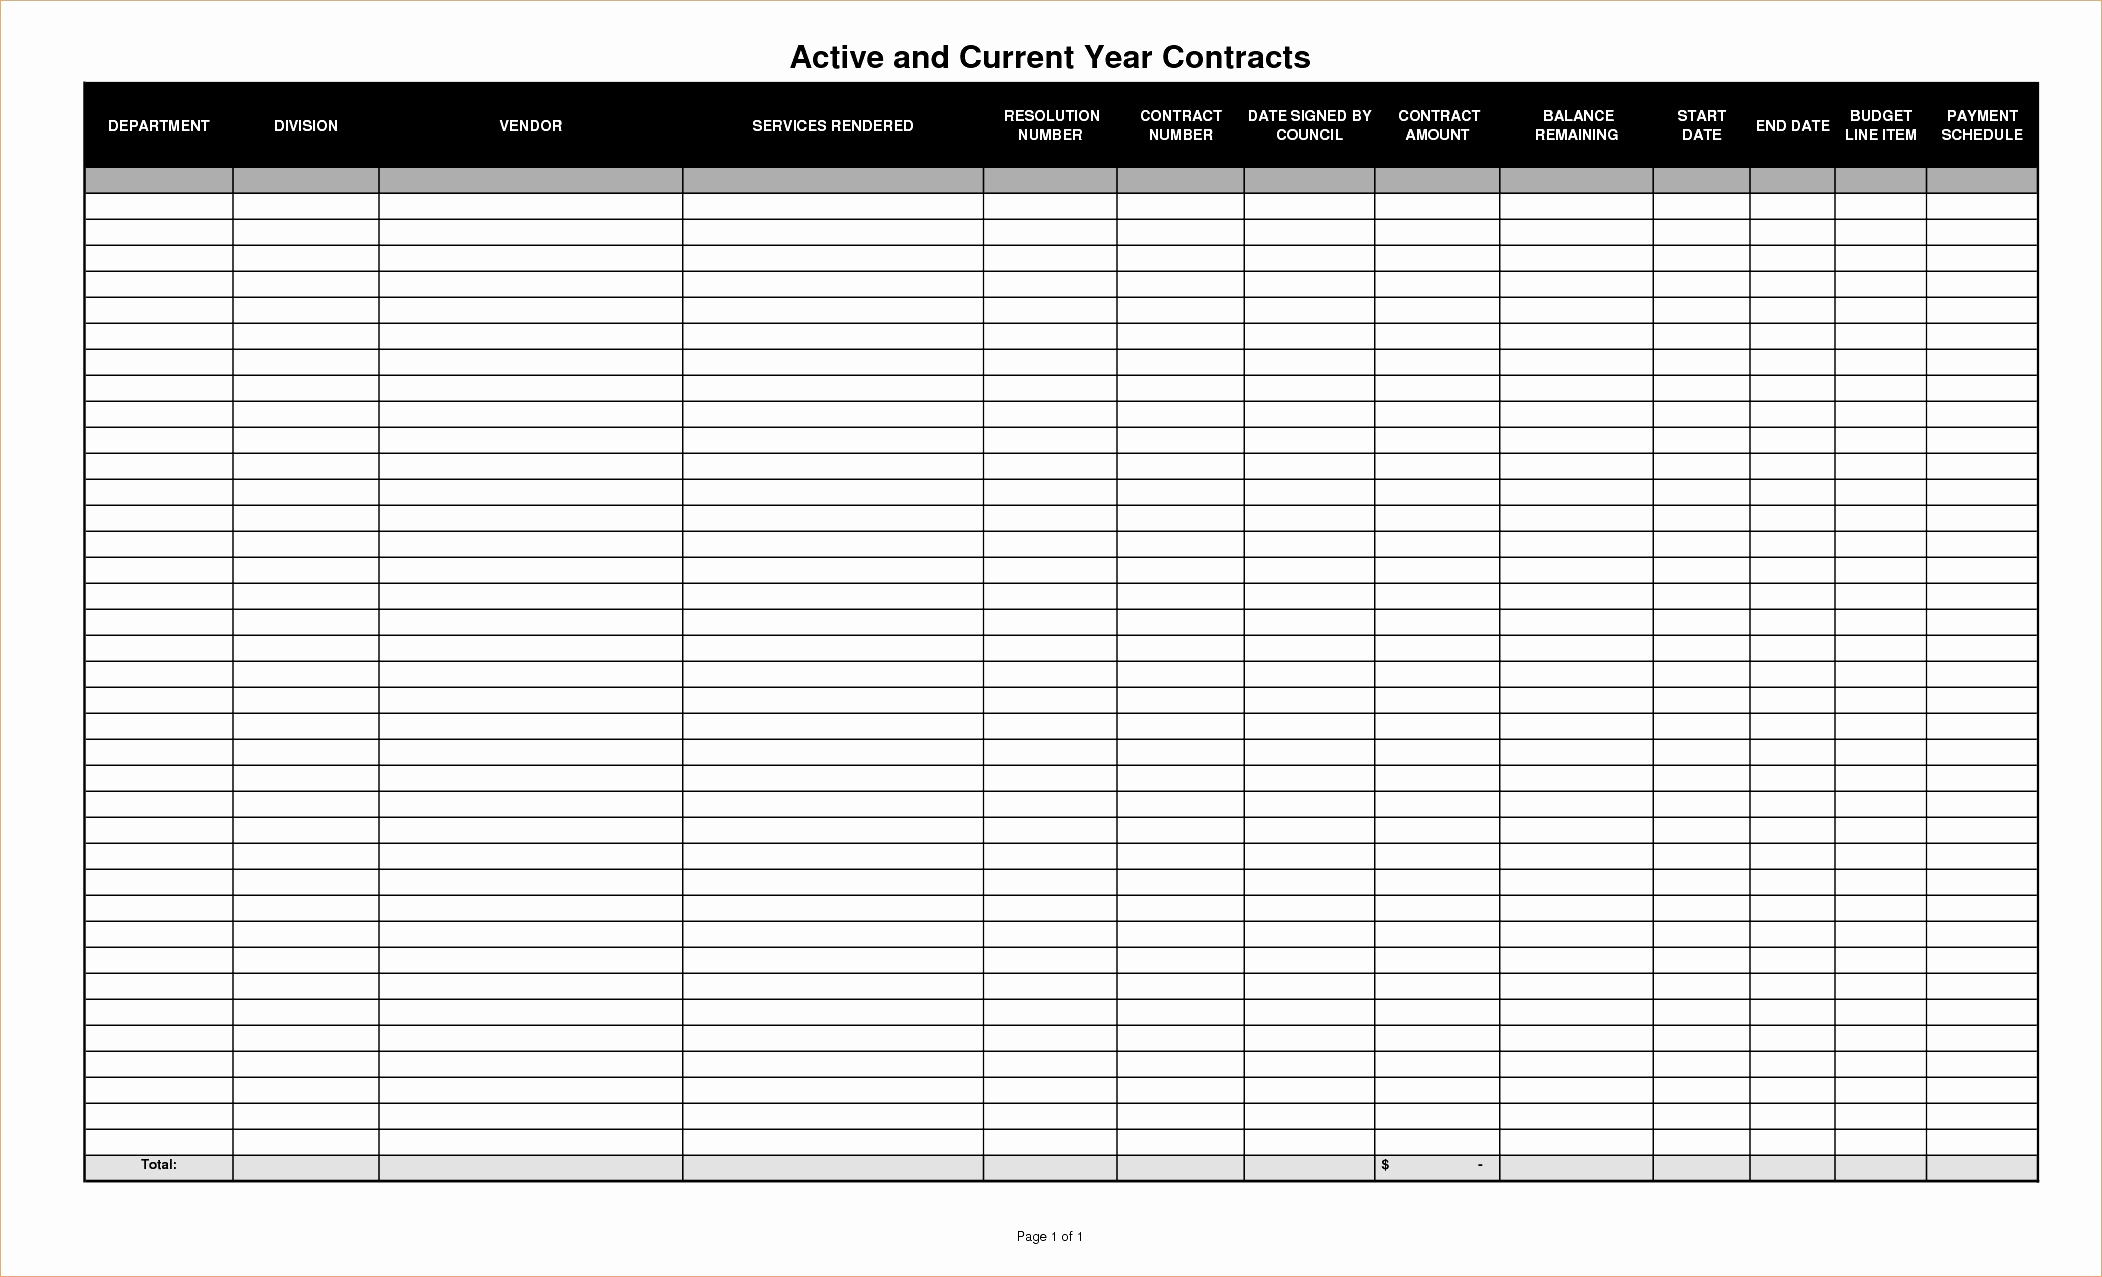 Cattle Inventory Spreadsheet Template Awesome Cattle Inventory Throughout Basic Inventory Spreadsheet Template